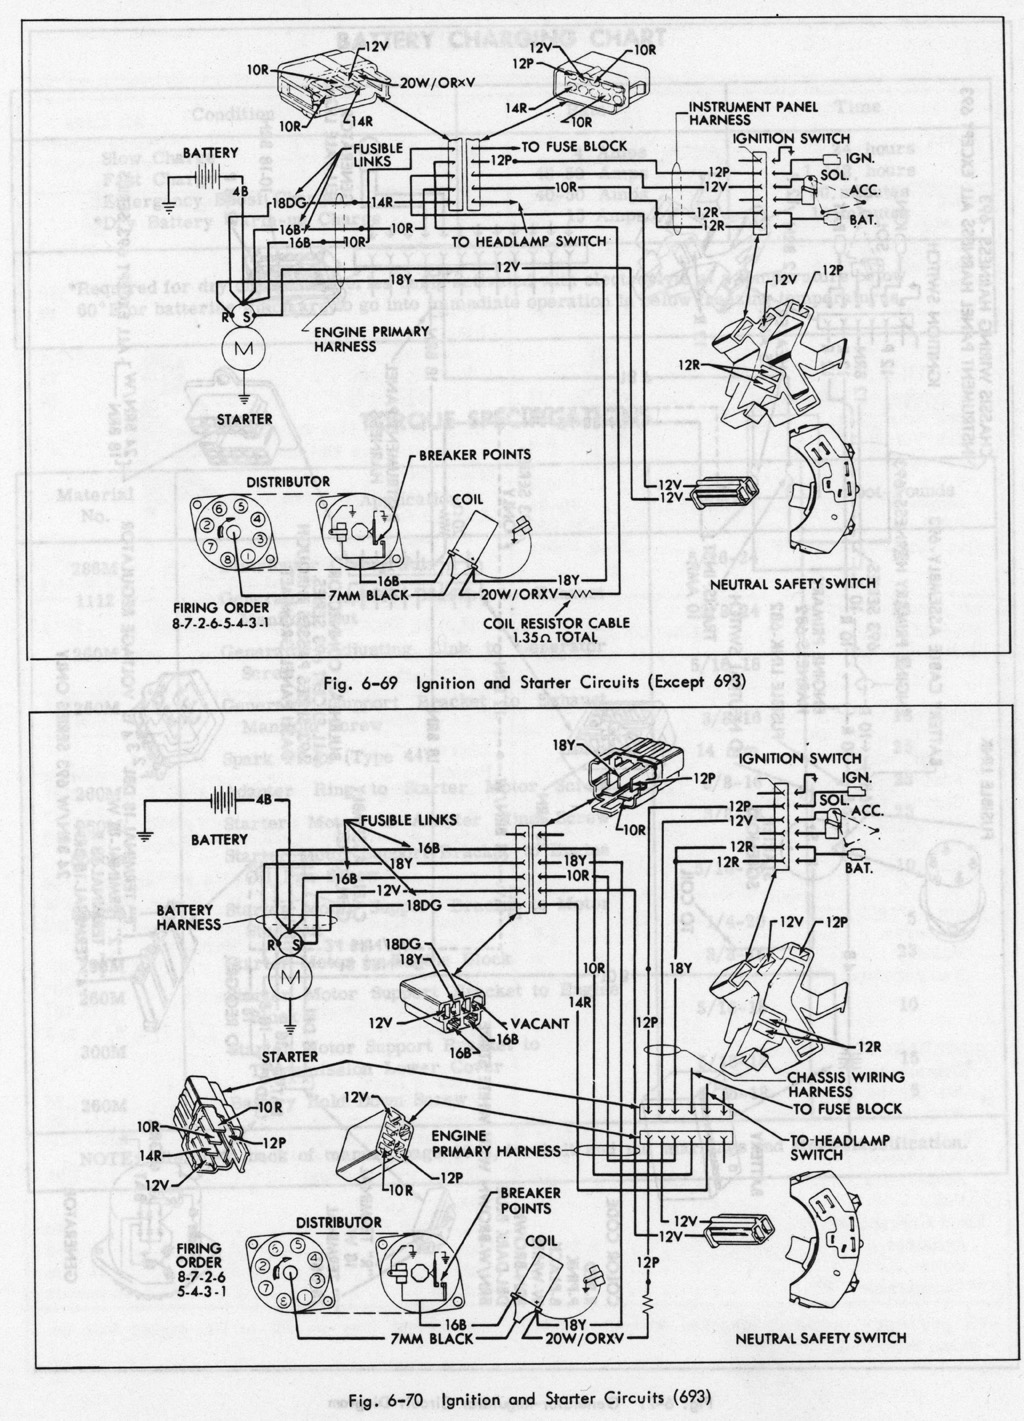 Cadillac Distributor Wiring Diagram Ktm Duke 200 Service Manual Pdf For Wiring Diagram Schematics